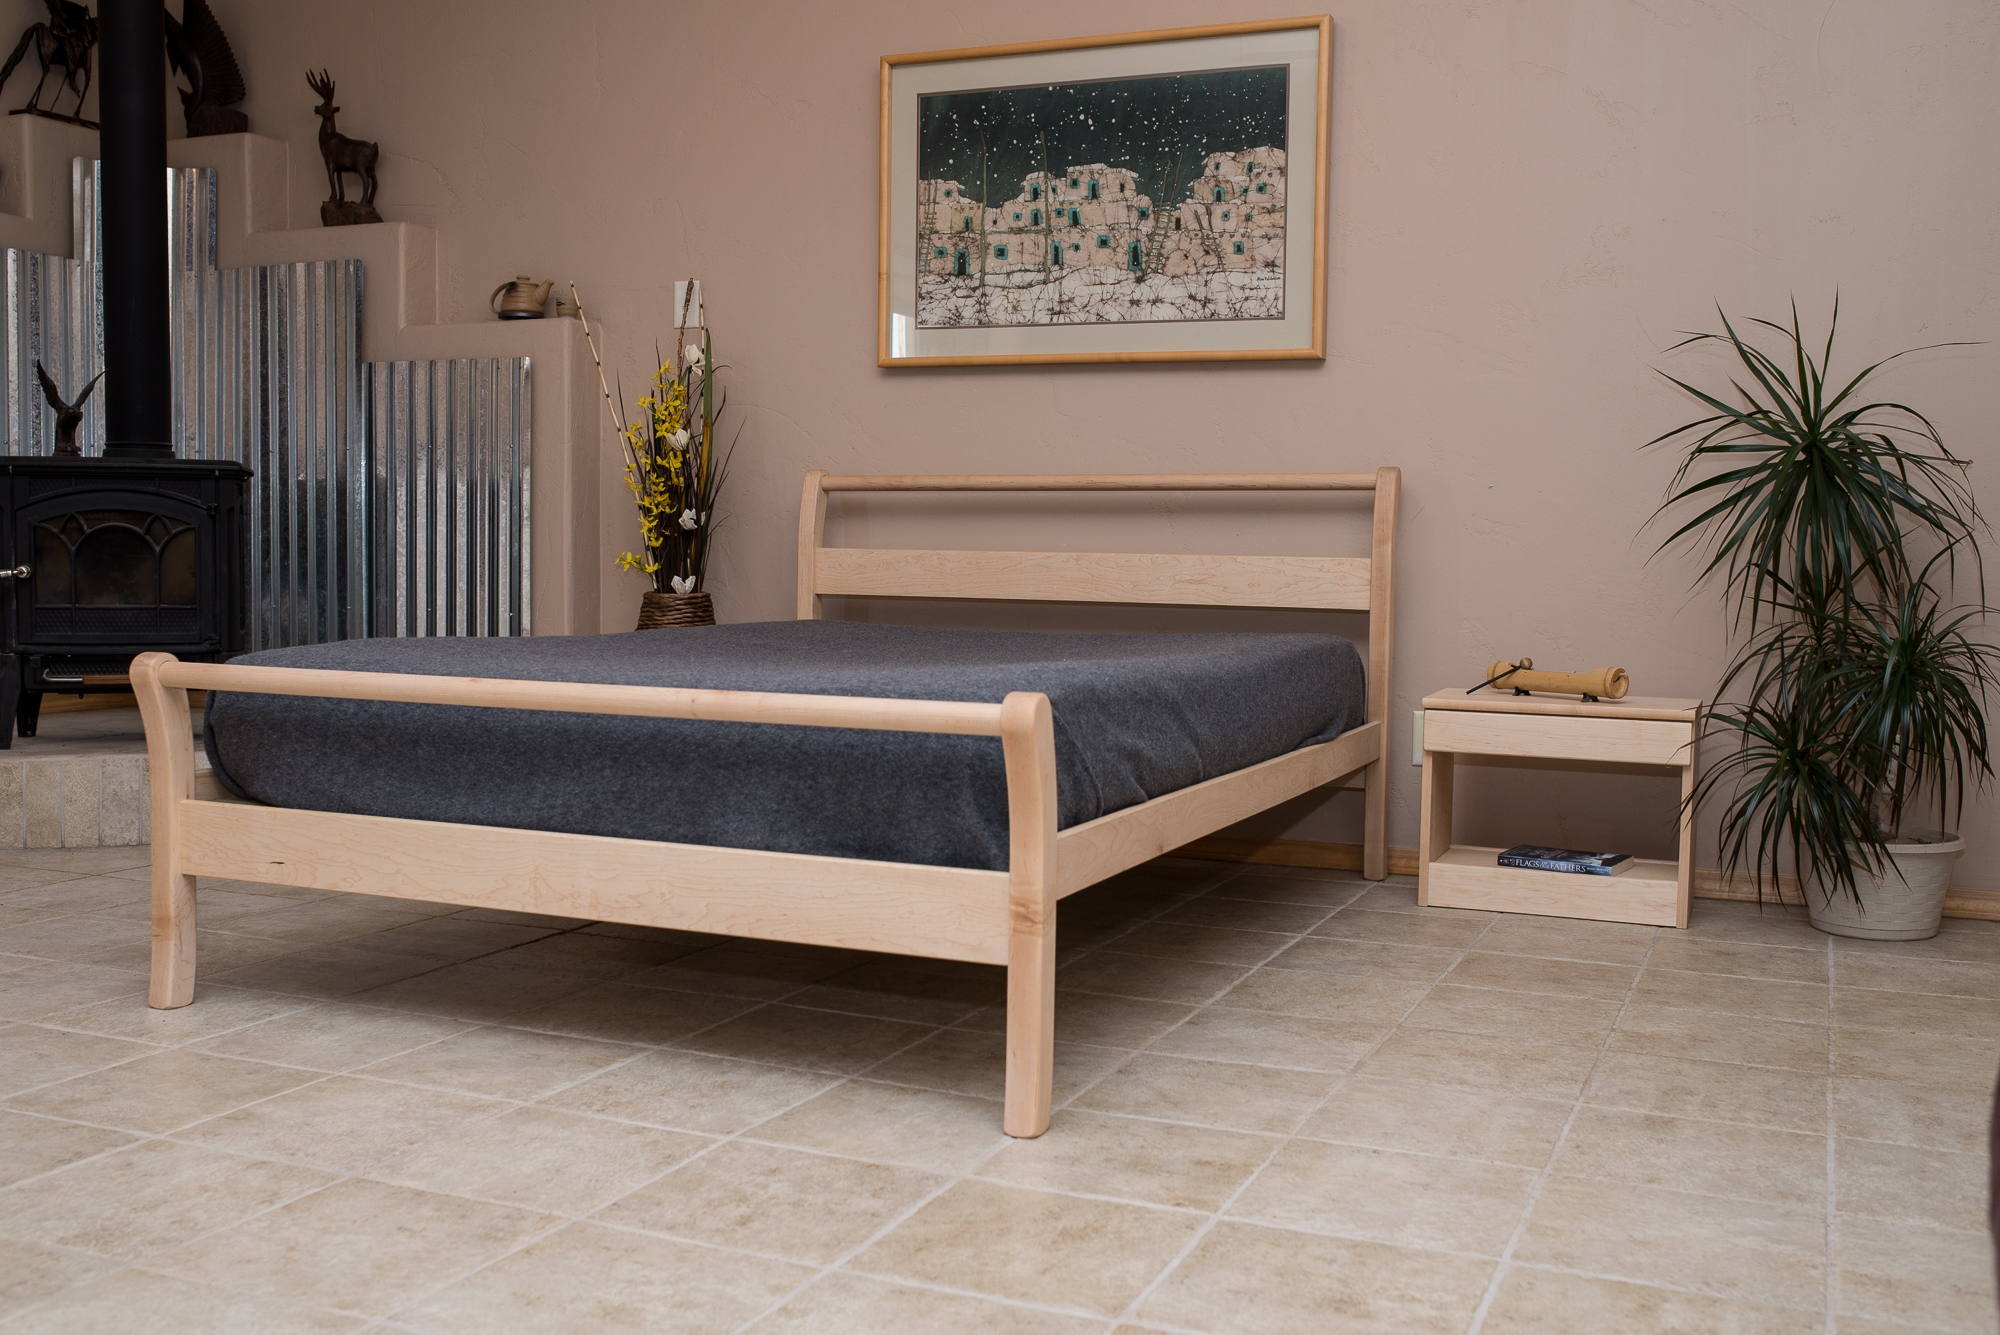 Permalink to Organic Bed Frames